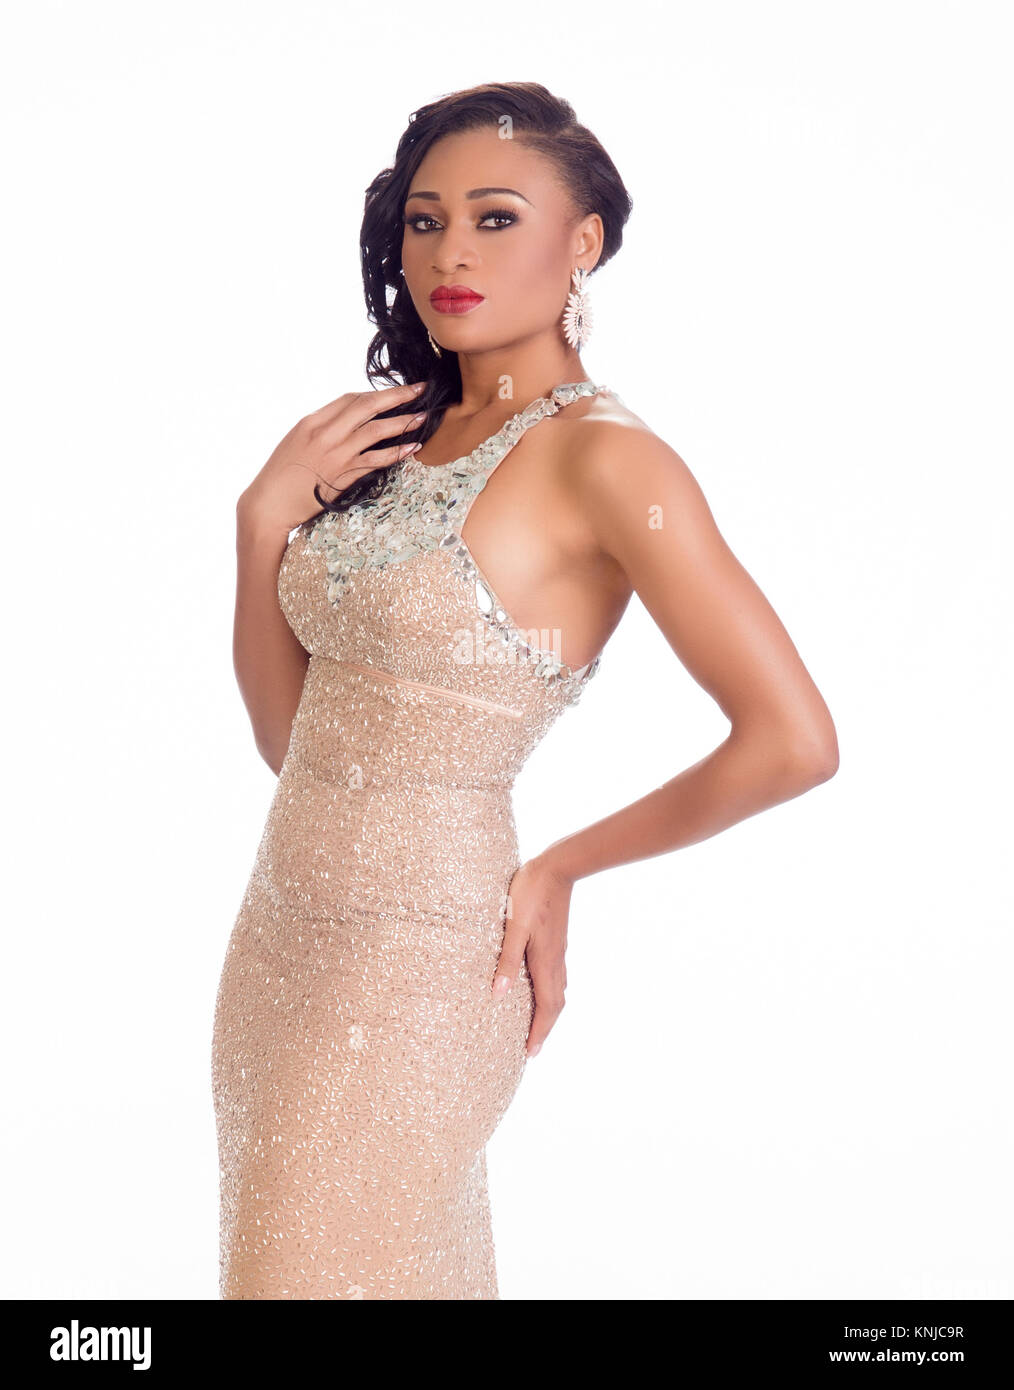 DORAL, FL - JANUARY 23: Queen Celestine, Miss Nigeria 2014 poses is her evening gown for The 63rd Annual MISS UNIVERSE - Stock Image